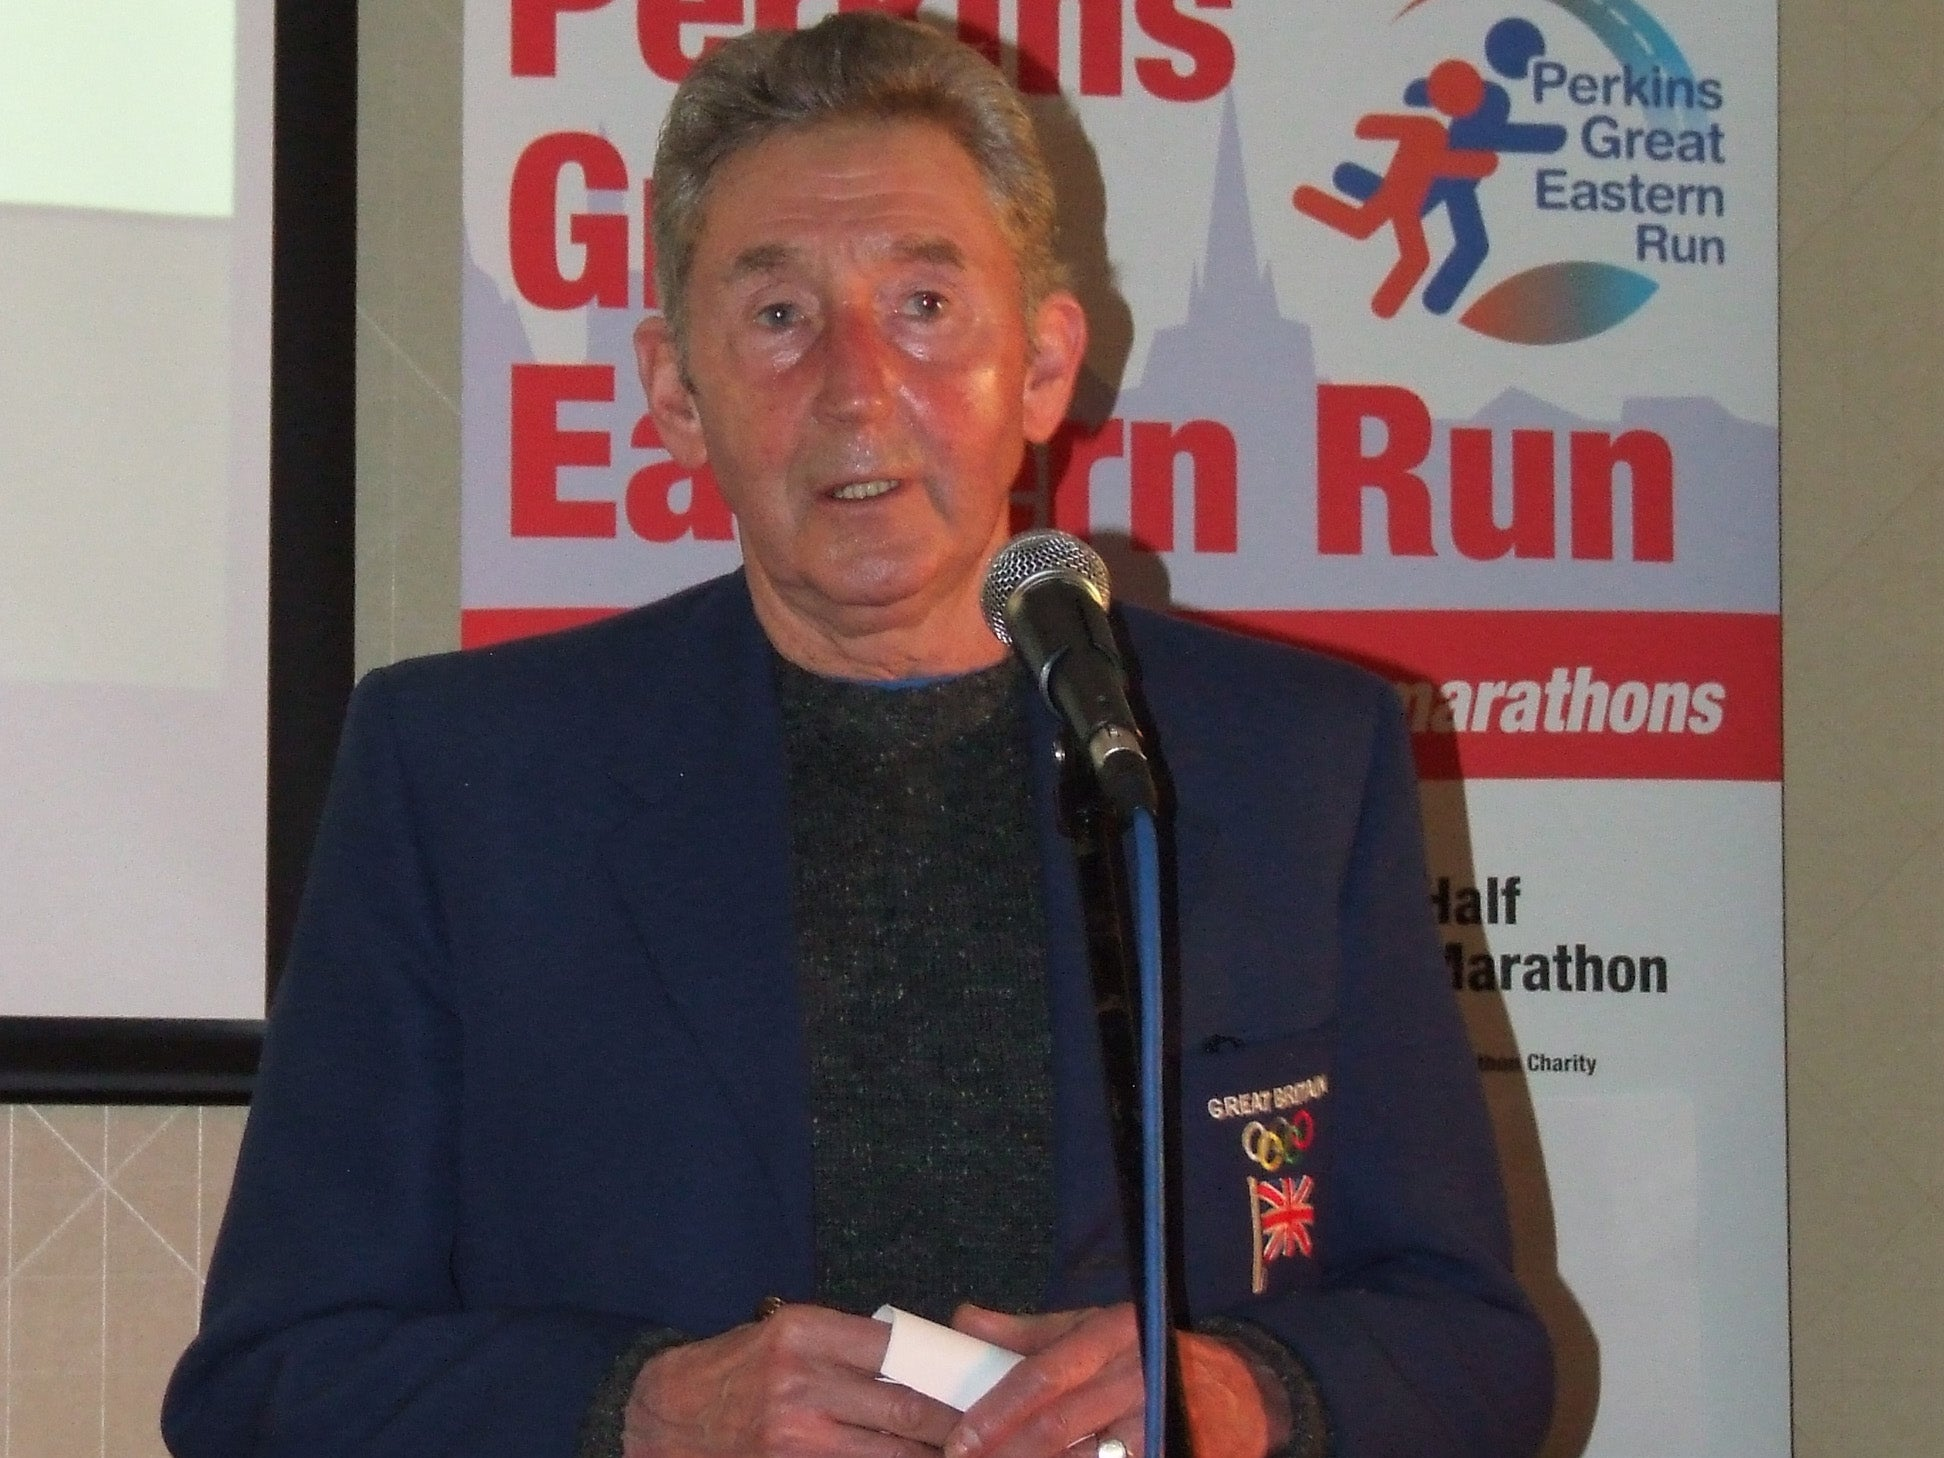 Ron officially launches the Perkins Great Eastern Run 2014